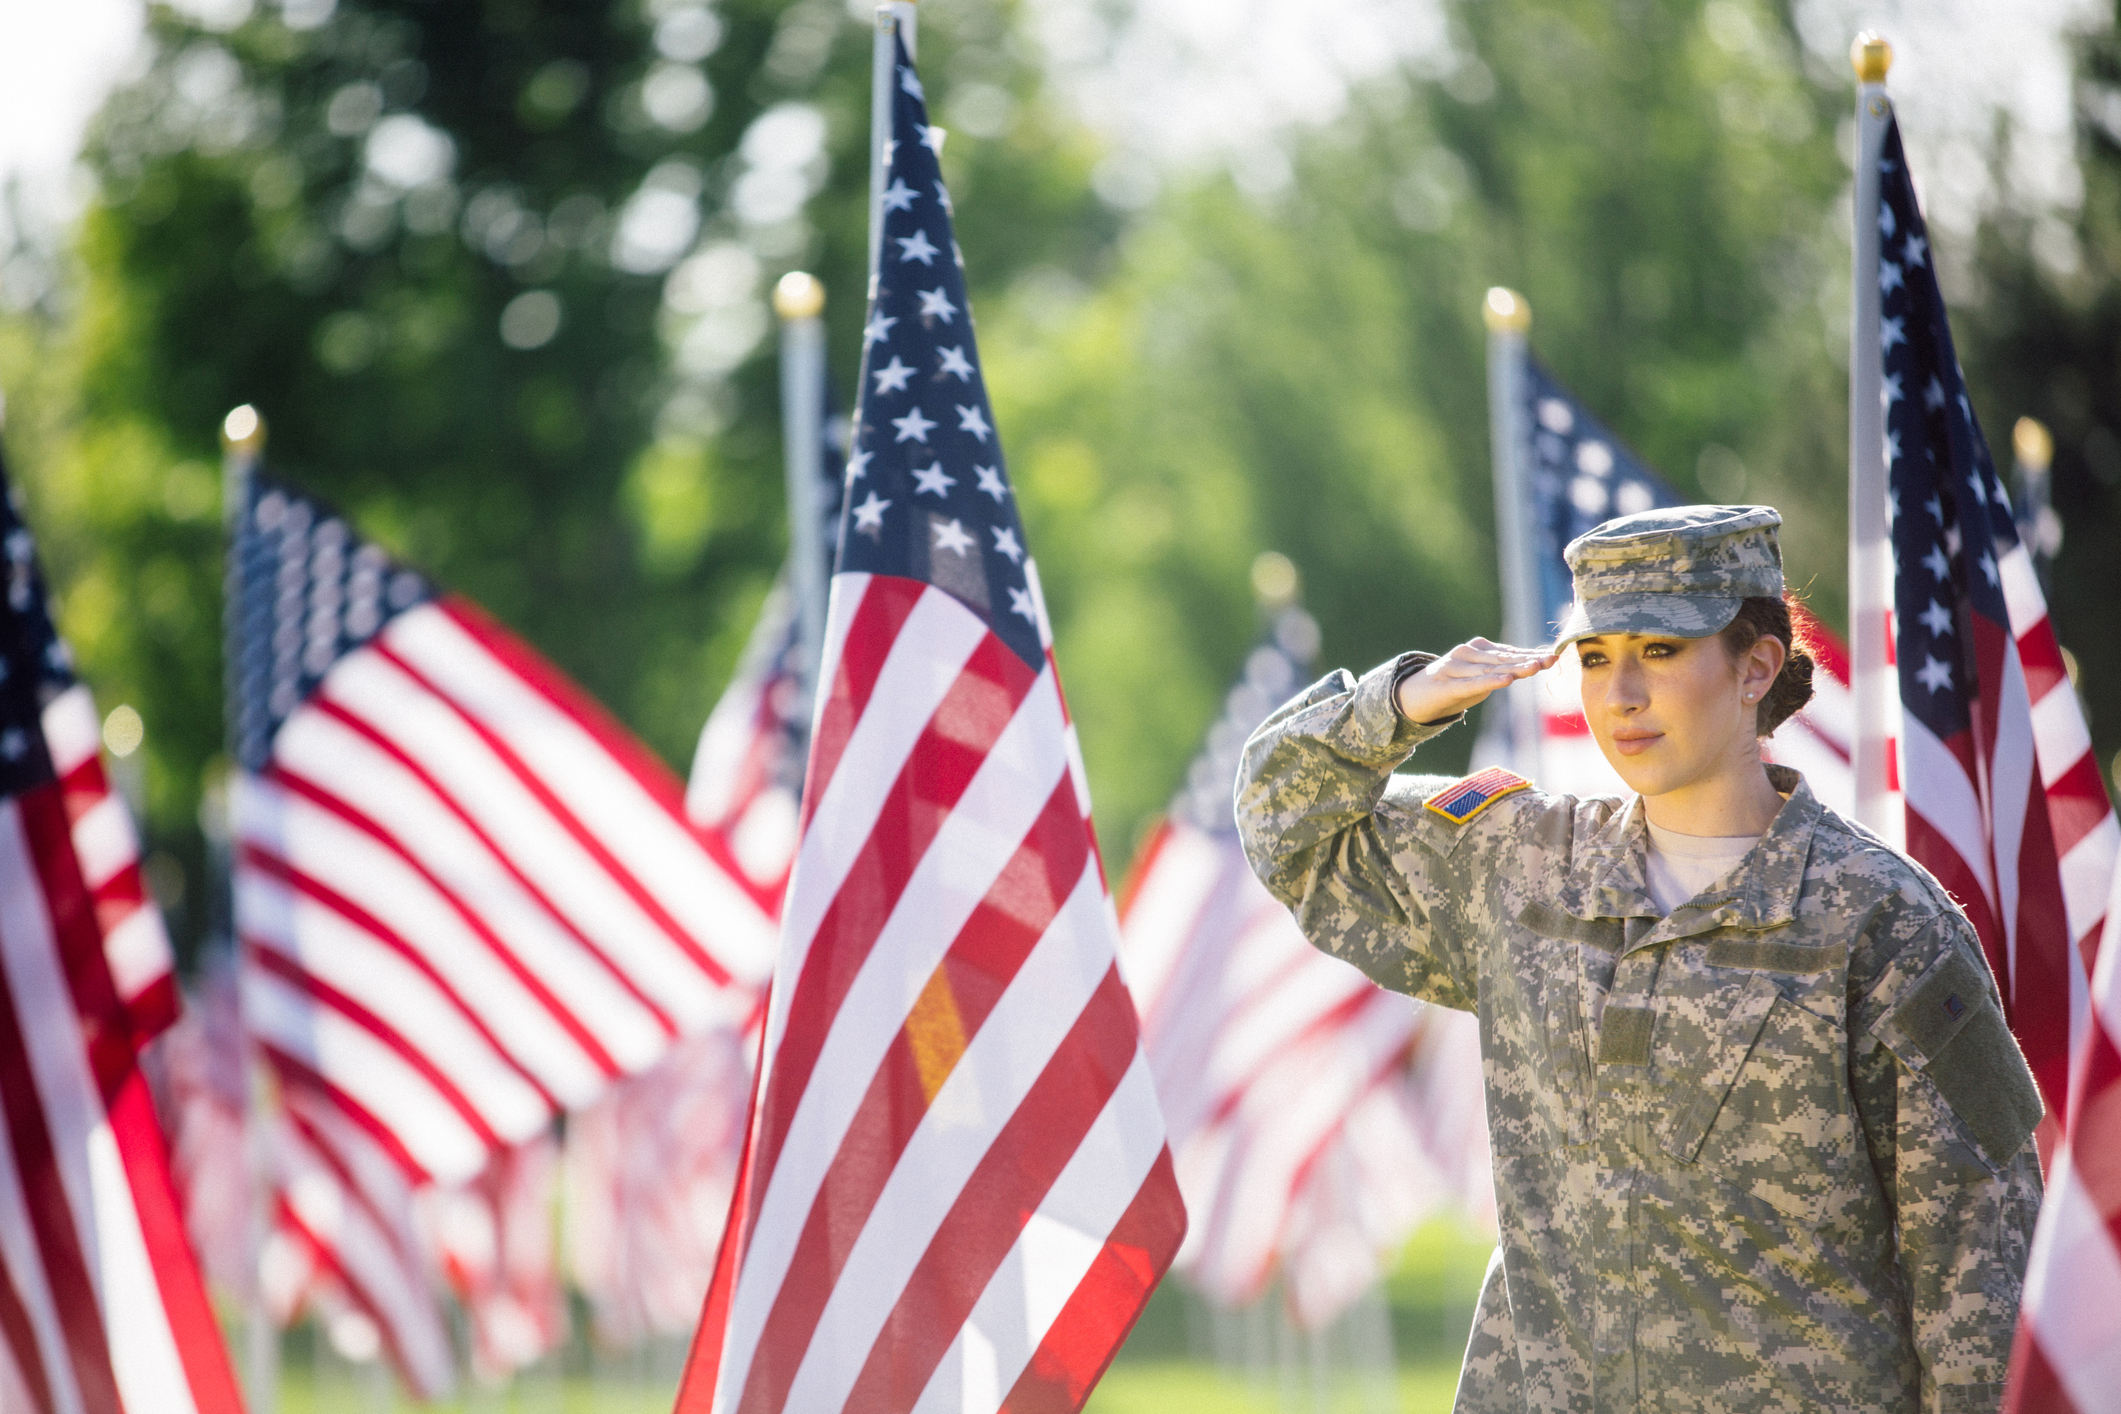 A young service woman salutes amid a field of American flags.